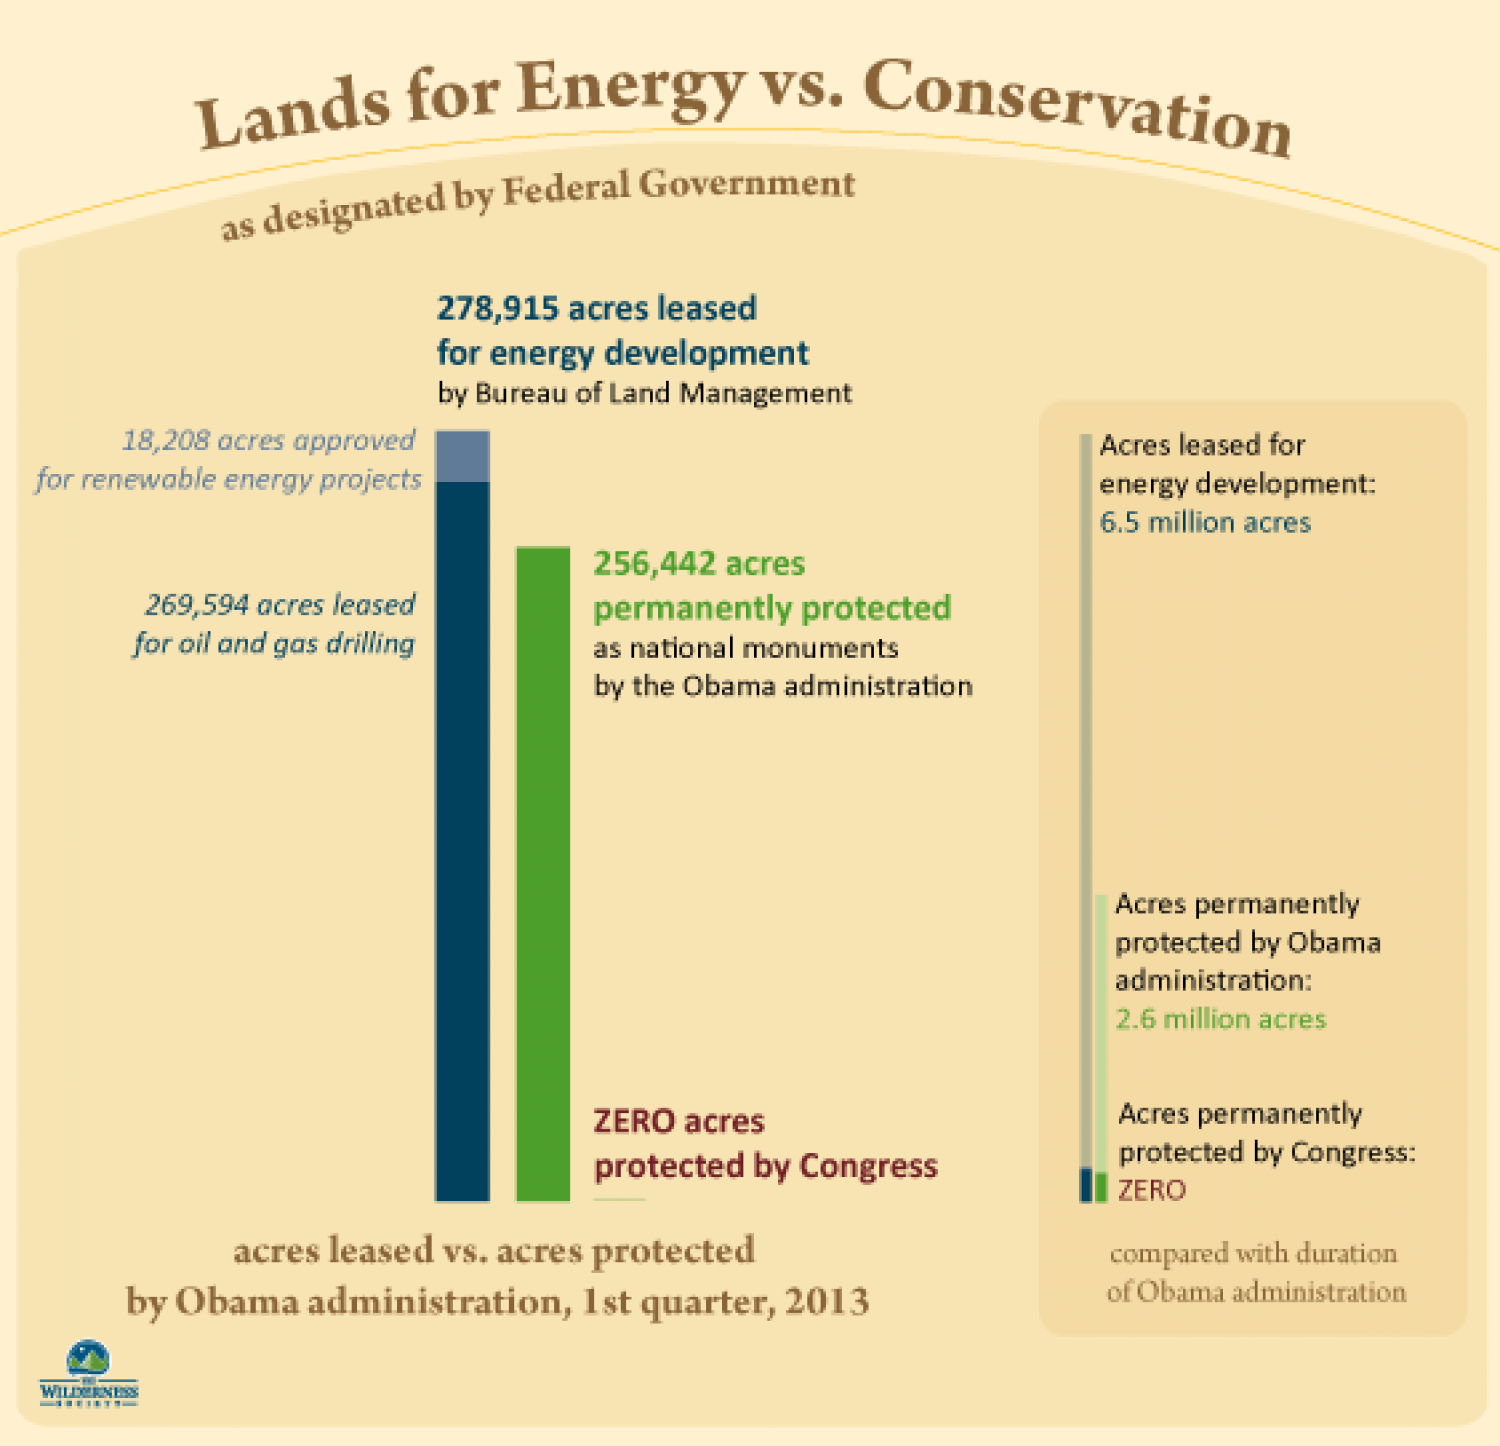 Lands for Energy vs. Conservation Infographic